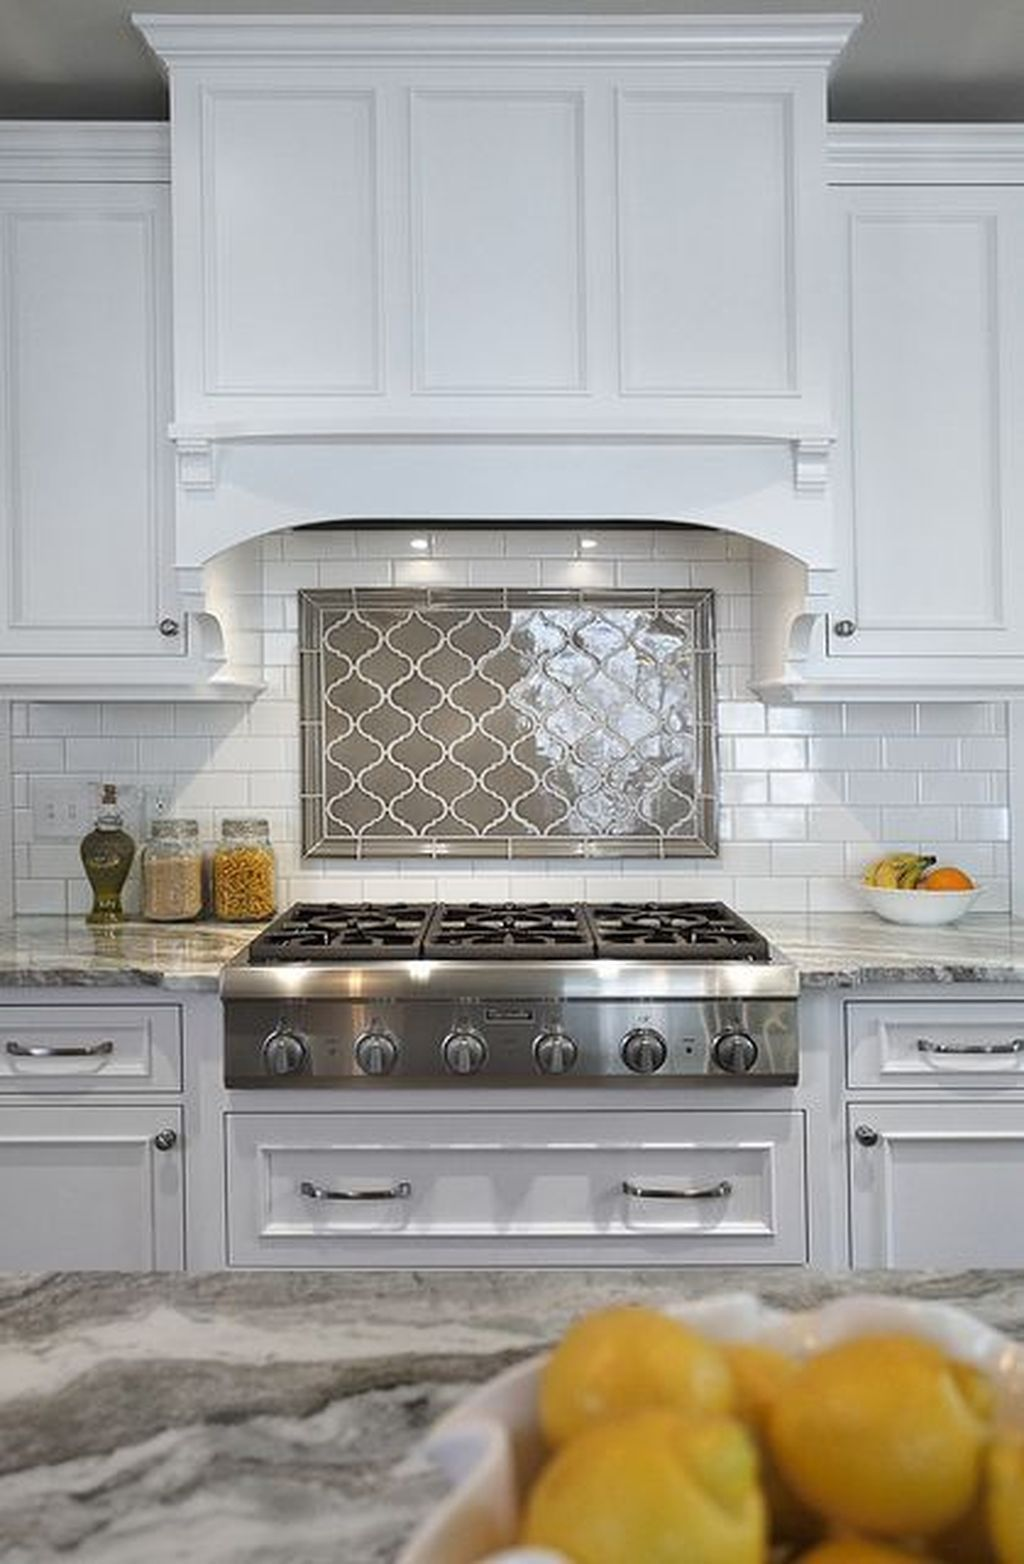 20 Amazing Kitchen Tile Backsplash Ideas Kitchen Backsplash Designs Kitchen Tiles Backsplash Kitchen Design